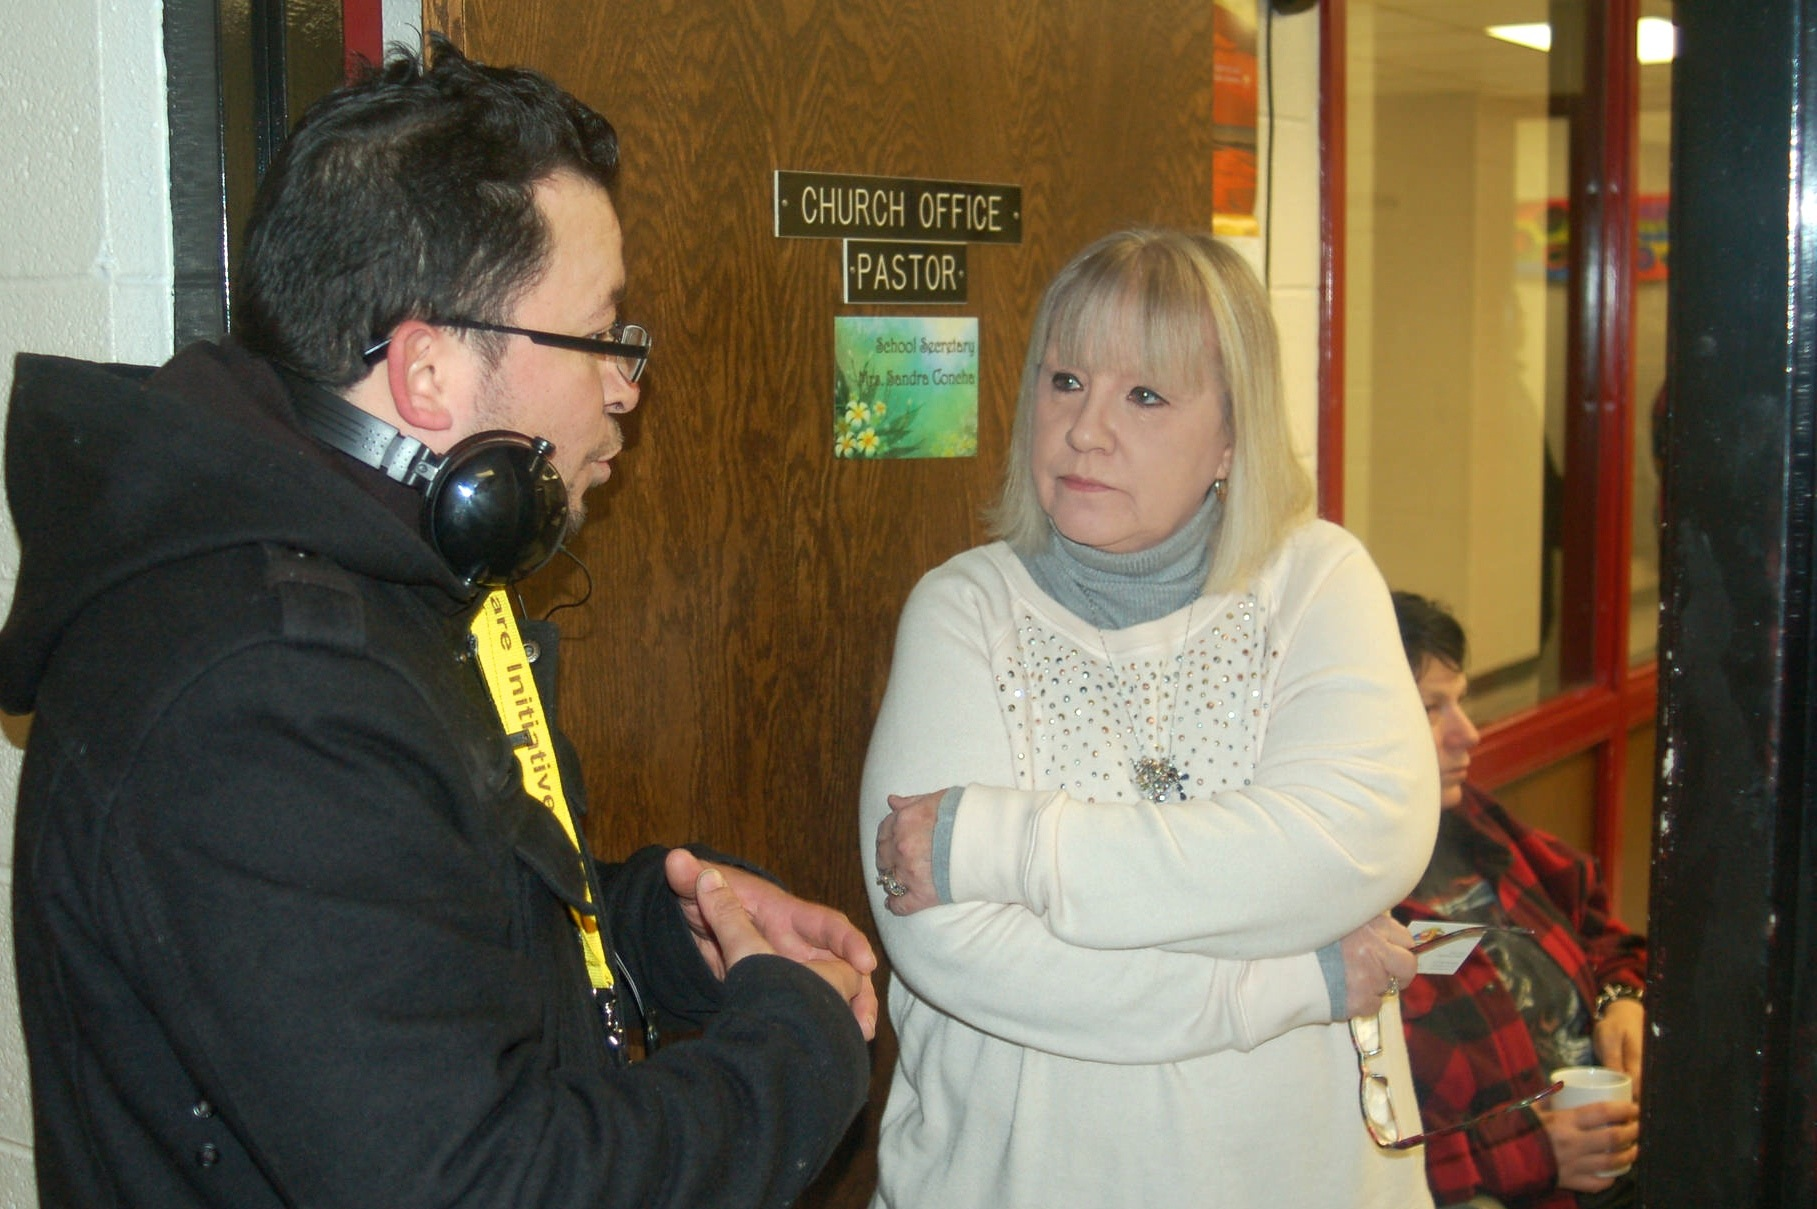 Jose Vasquez speaks to Nora Lenga, secretary at Christ-St. Peter Lutheran School, as part of his outreach to Clarke Square faith-based groups.